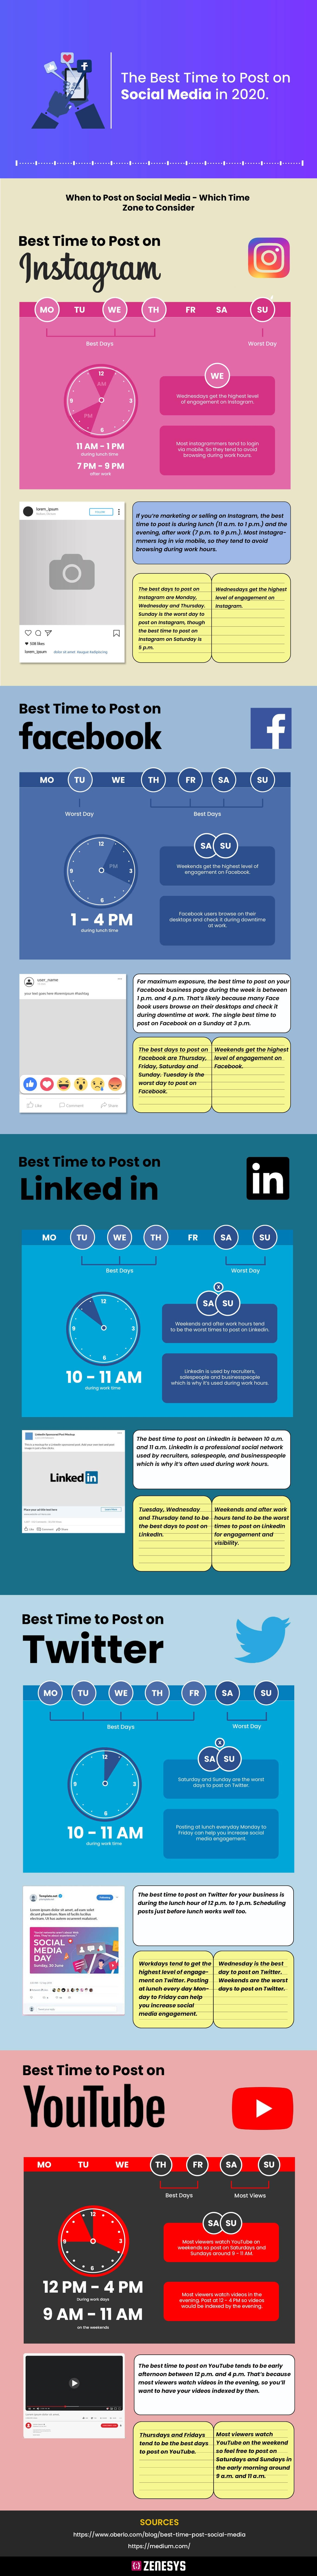 The best time to post on Social Media in 2020 #infographic